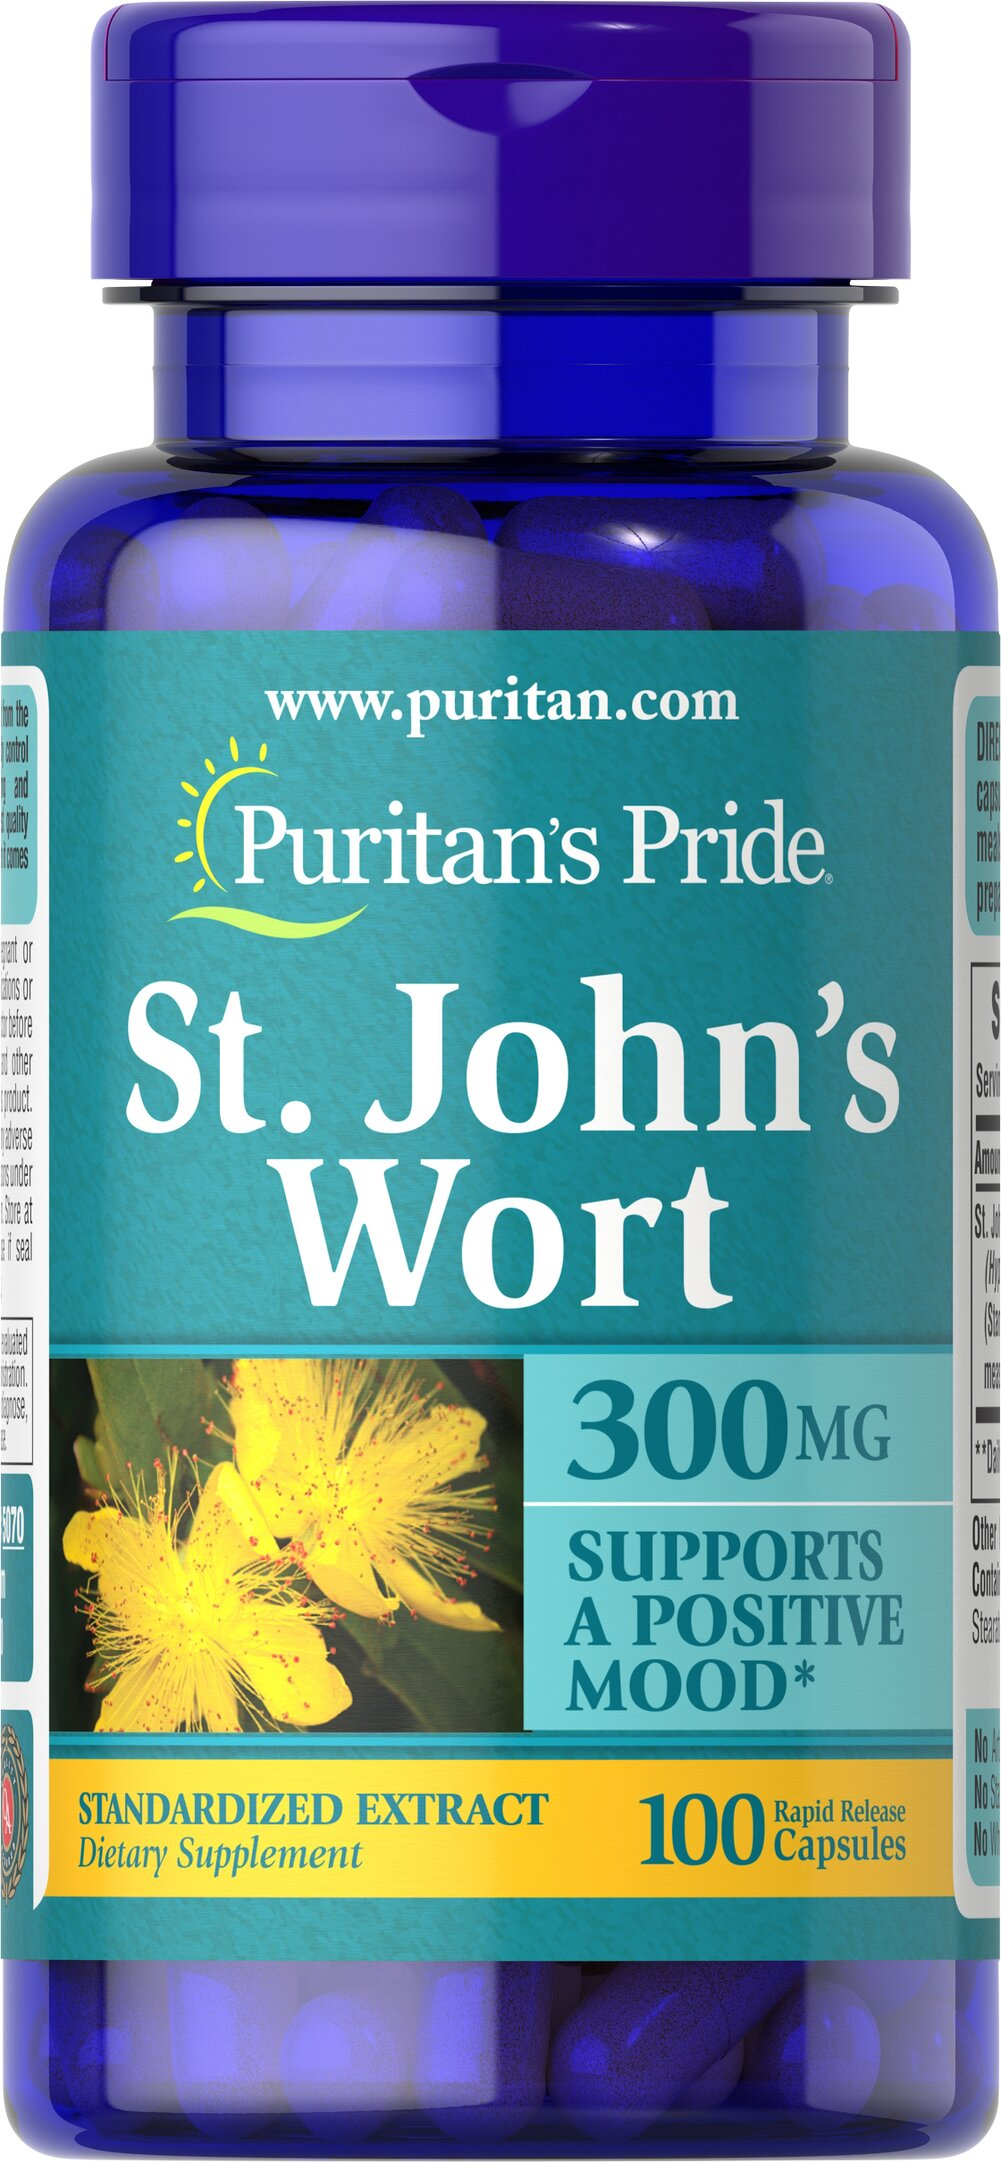 St. John's Wort Standardized Extract 300 mg <p>St. John's Wort has been used for centuries as a tonic and is clinically proven to promote mental well-being and peaceful mood.** At 900 milligrams per day, St. John's Wort can help maintain a positive mood and is perfect for anyone experiencing occasional anxiety and everyday stress.**</p> 100 Capsules 300 mg $14.99